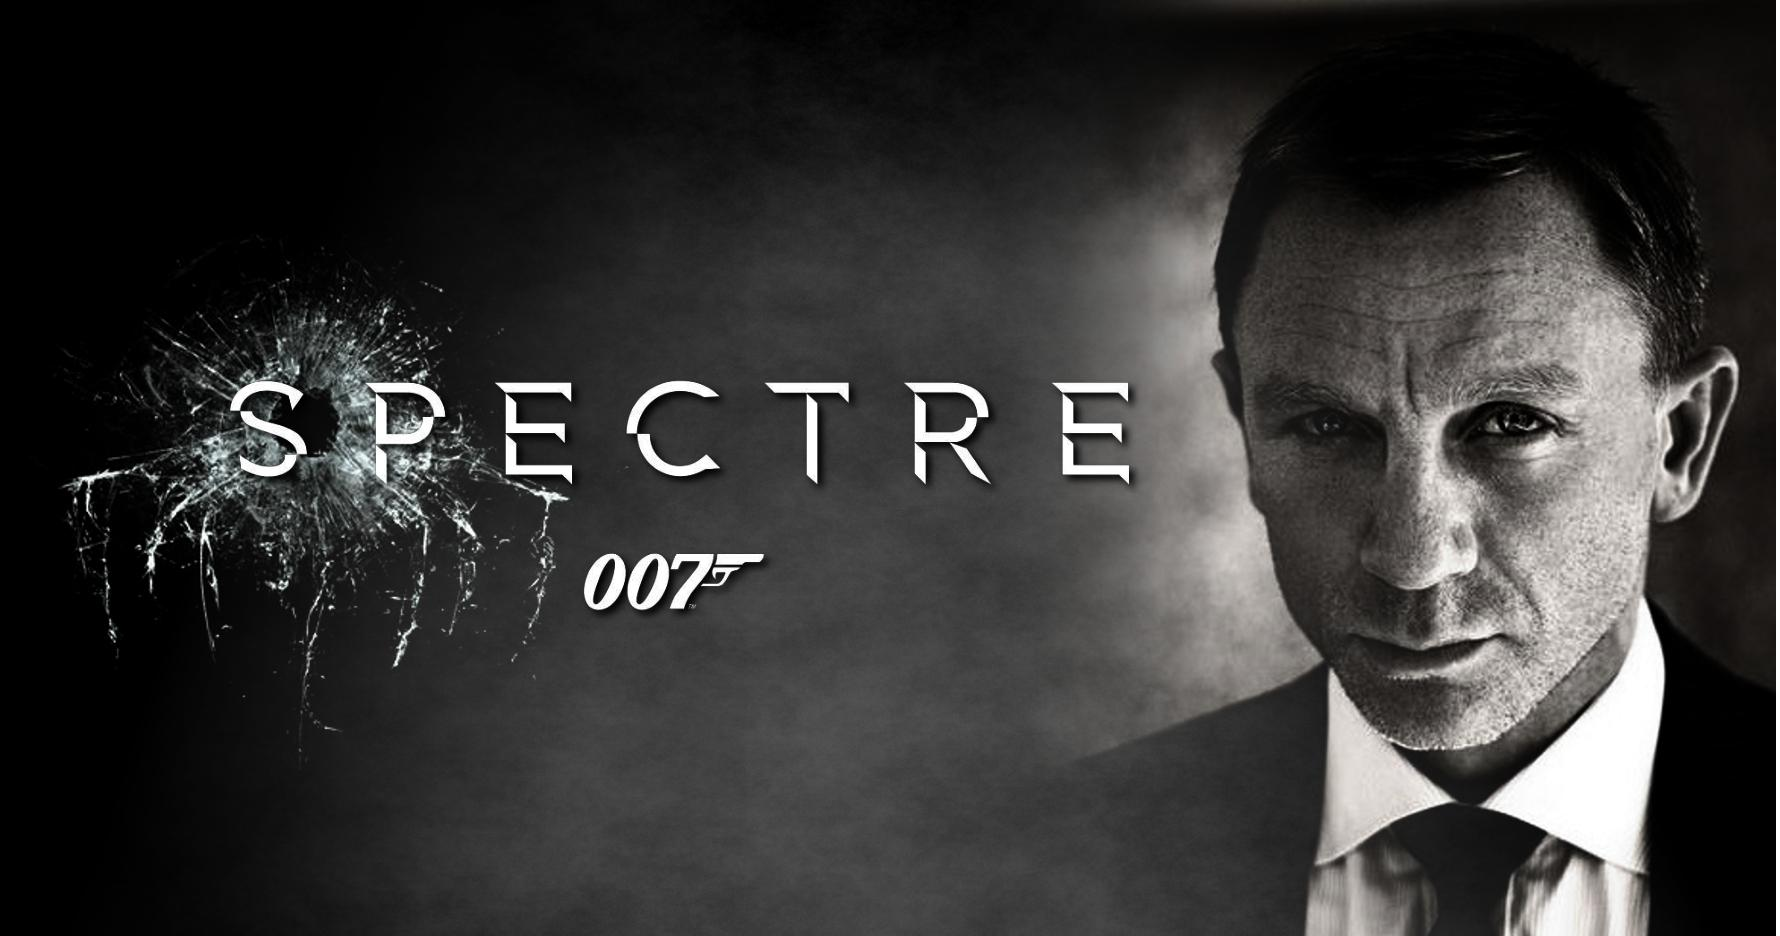 The New 007 Film